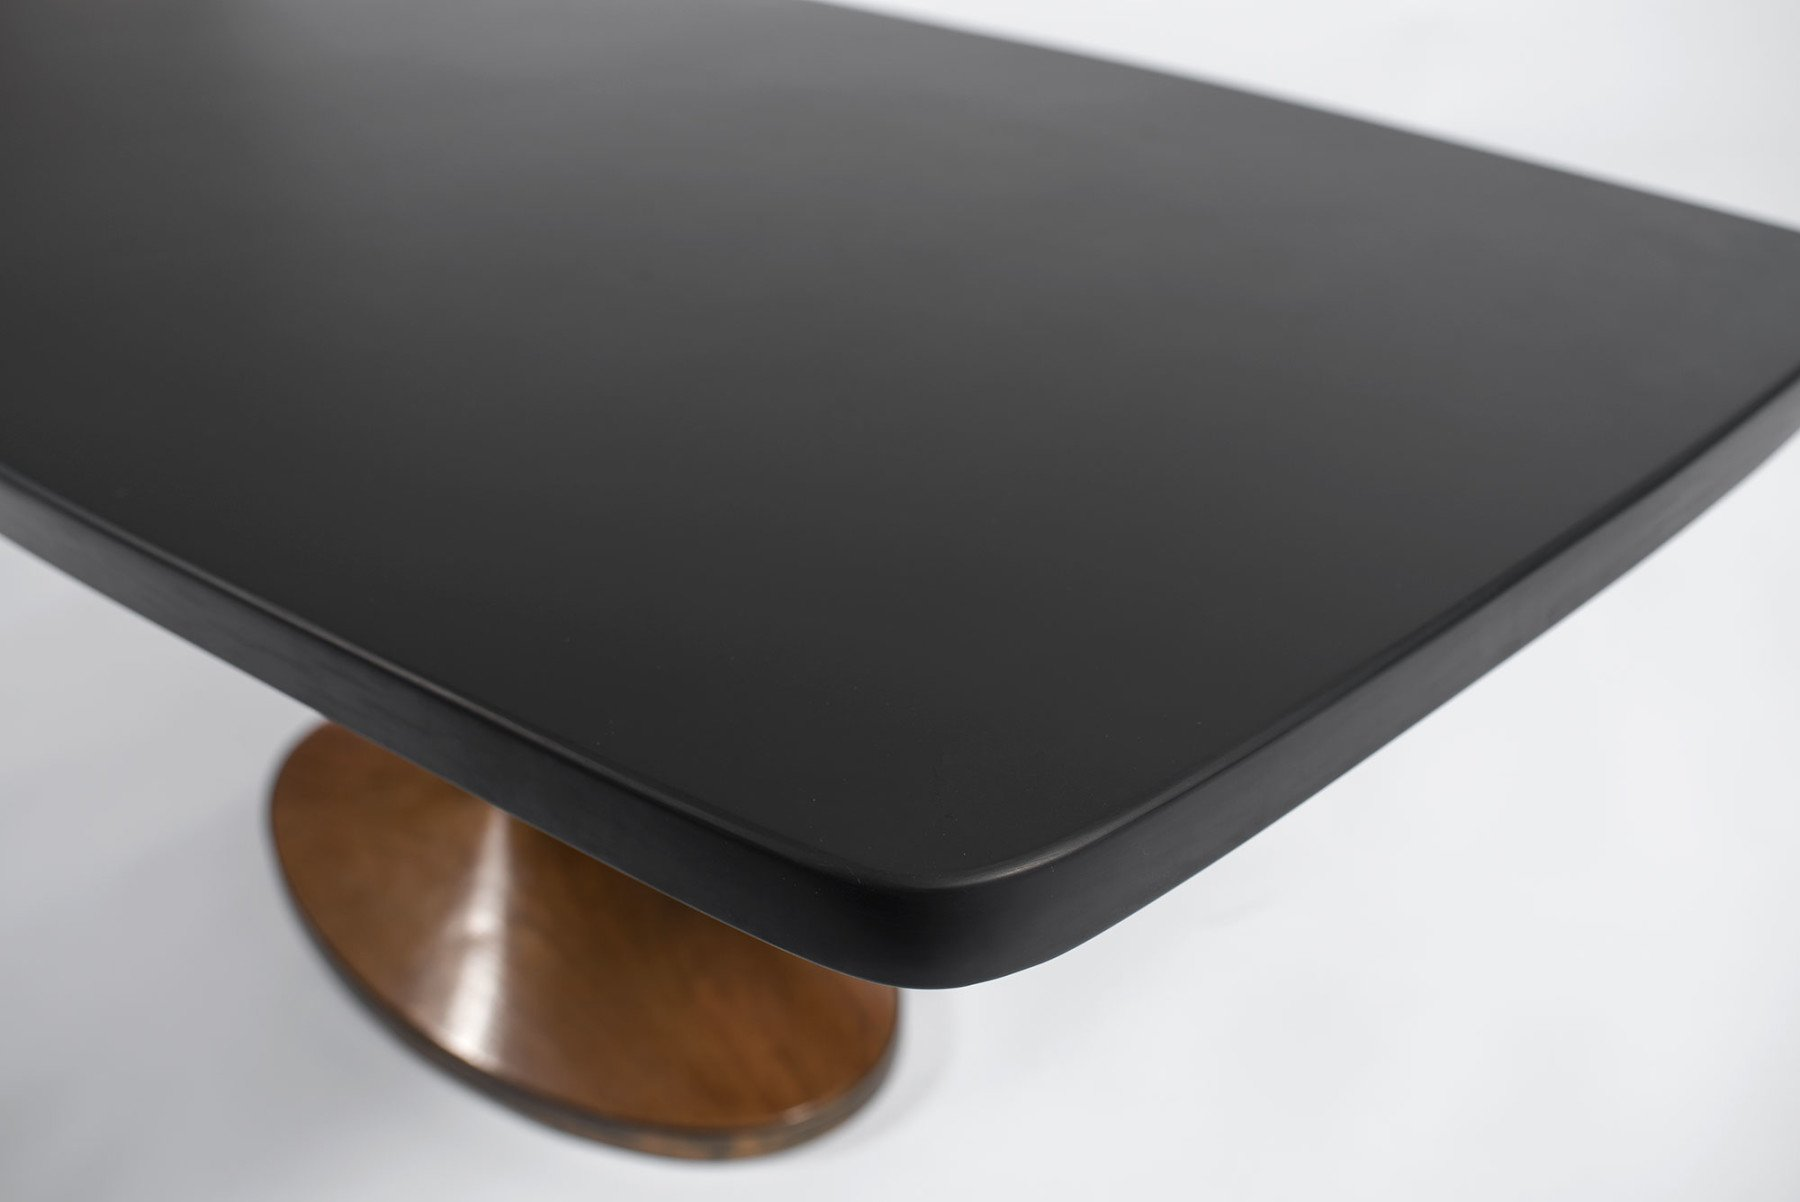 Luigi Caccia Dominioni  |  Coffee table mod. T7 with black slate top